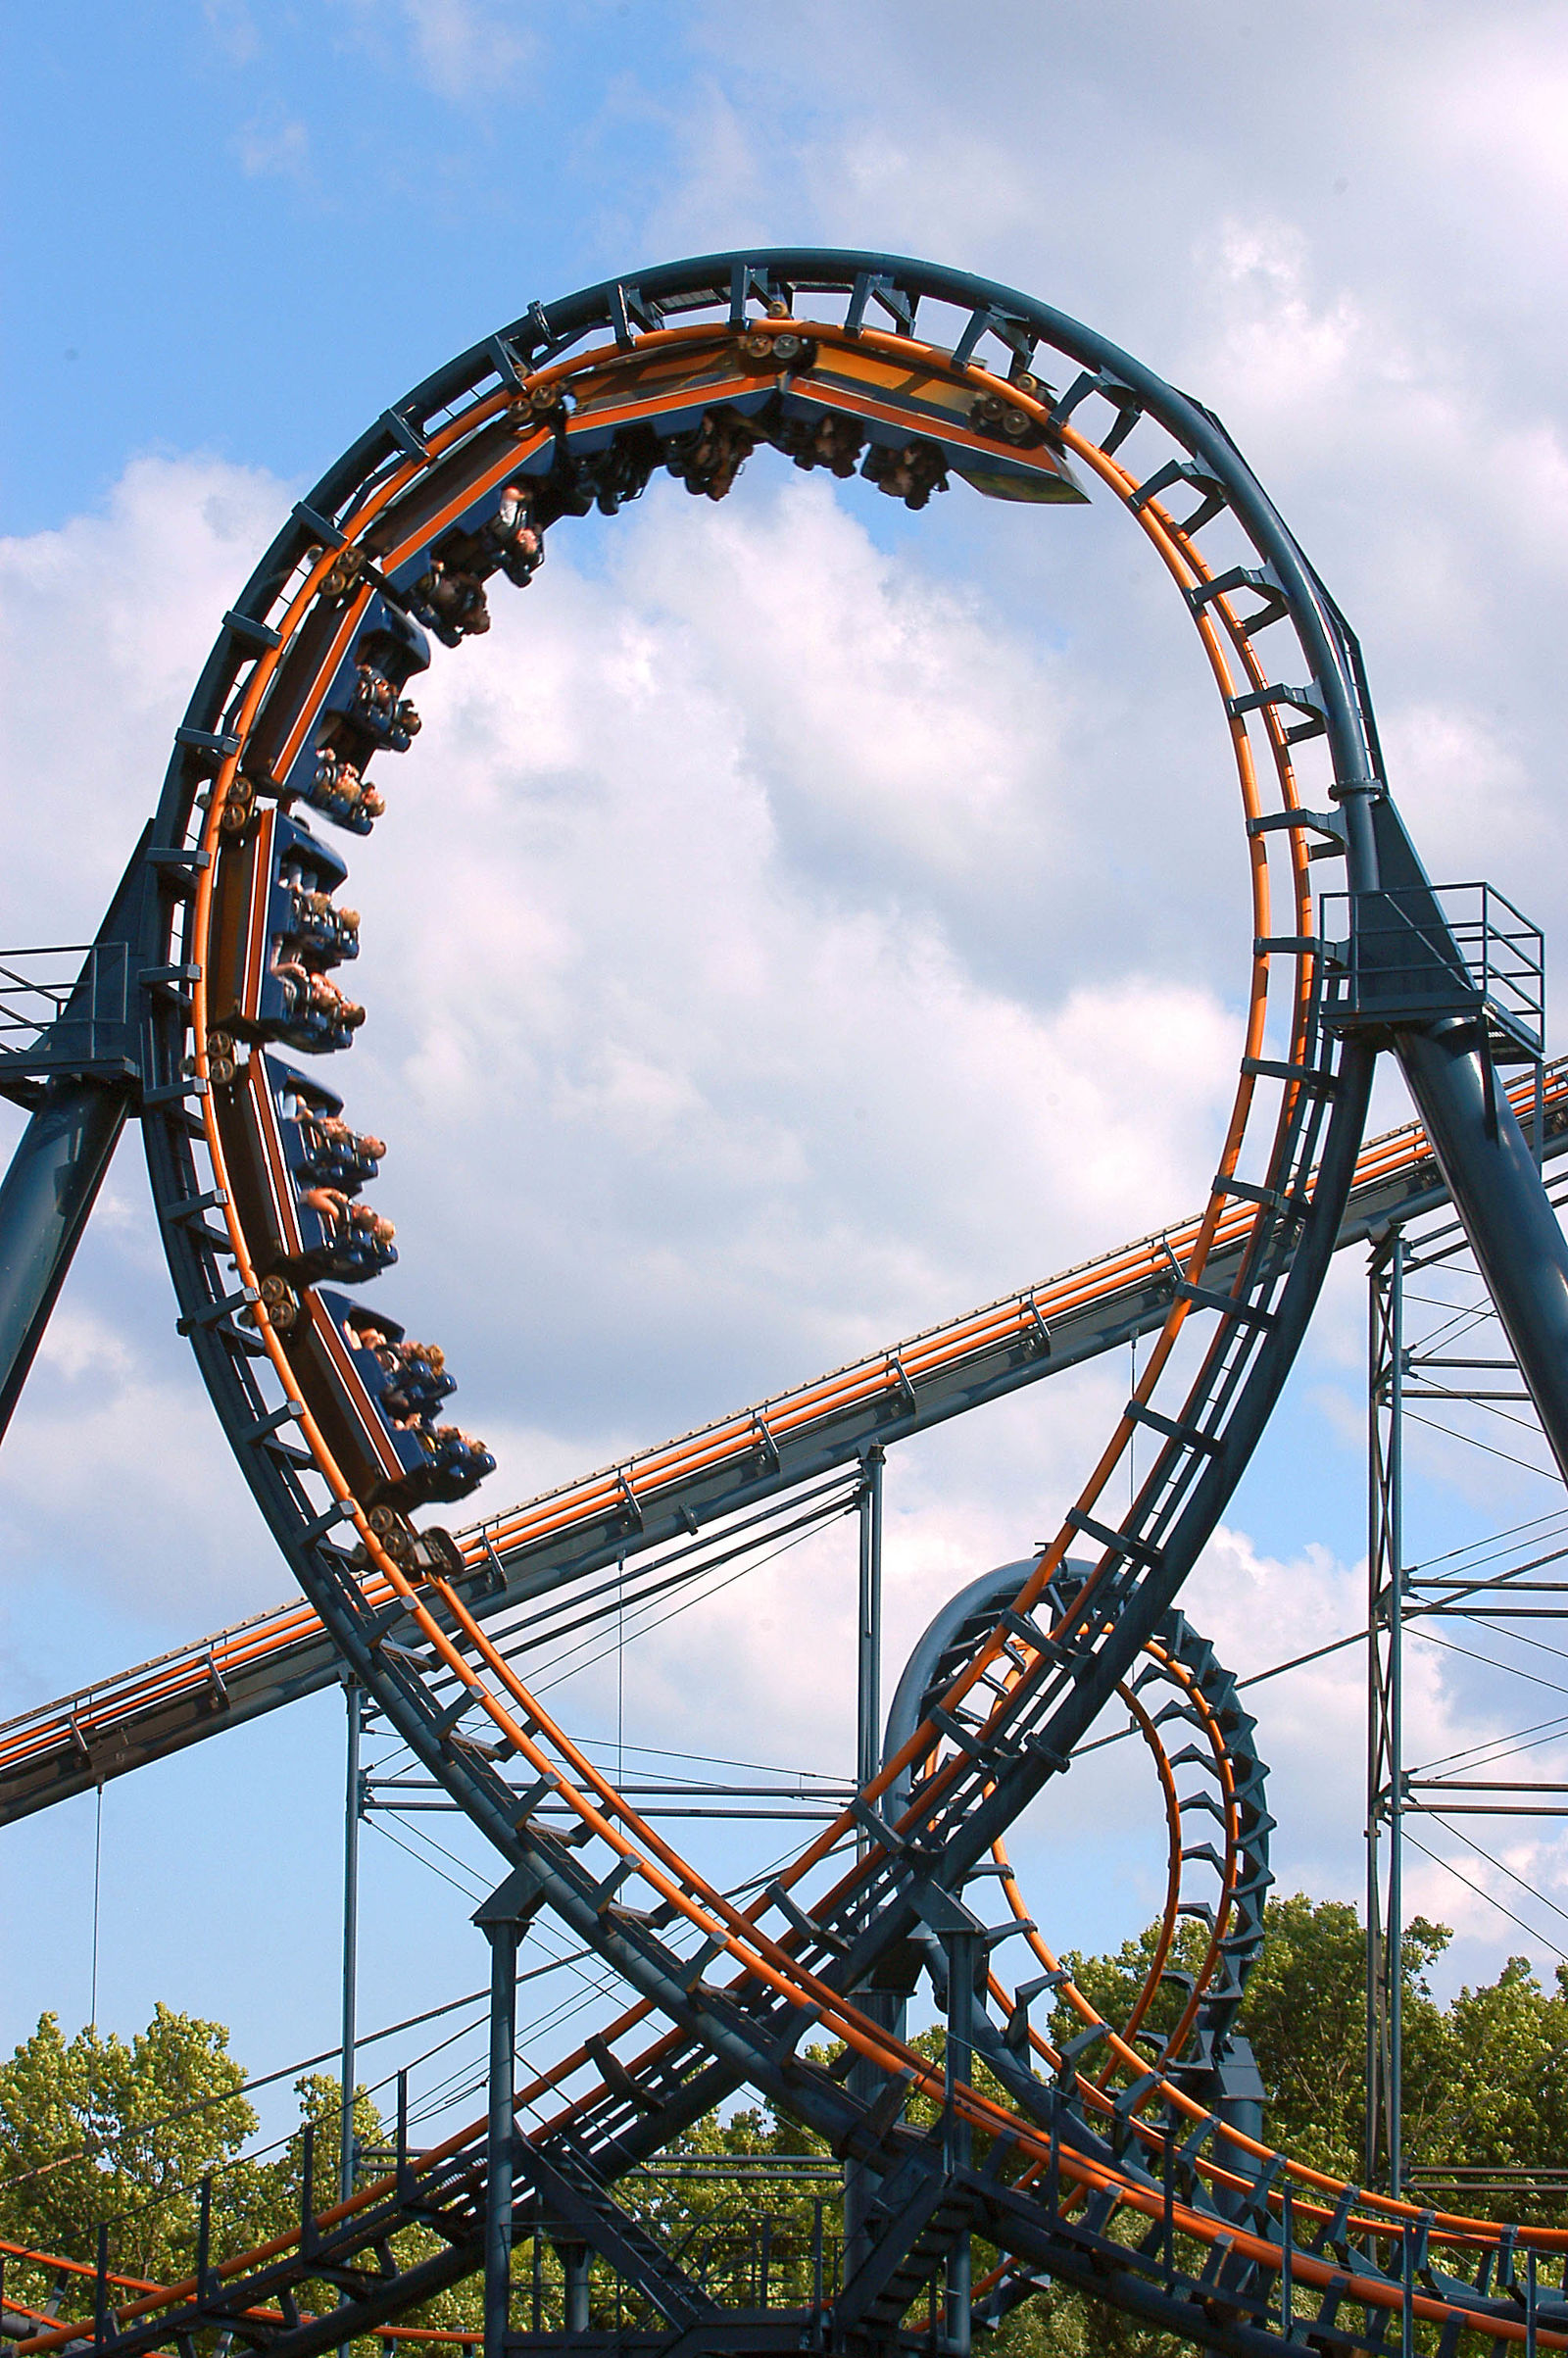 Kings Island said someone will be the 46 millionth rider of Vortex before it closes for good (Kings Island)